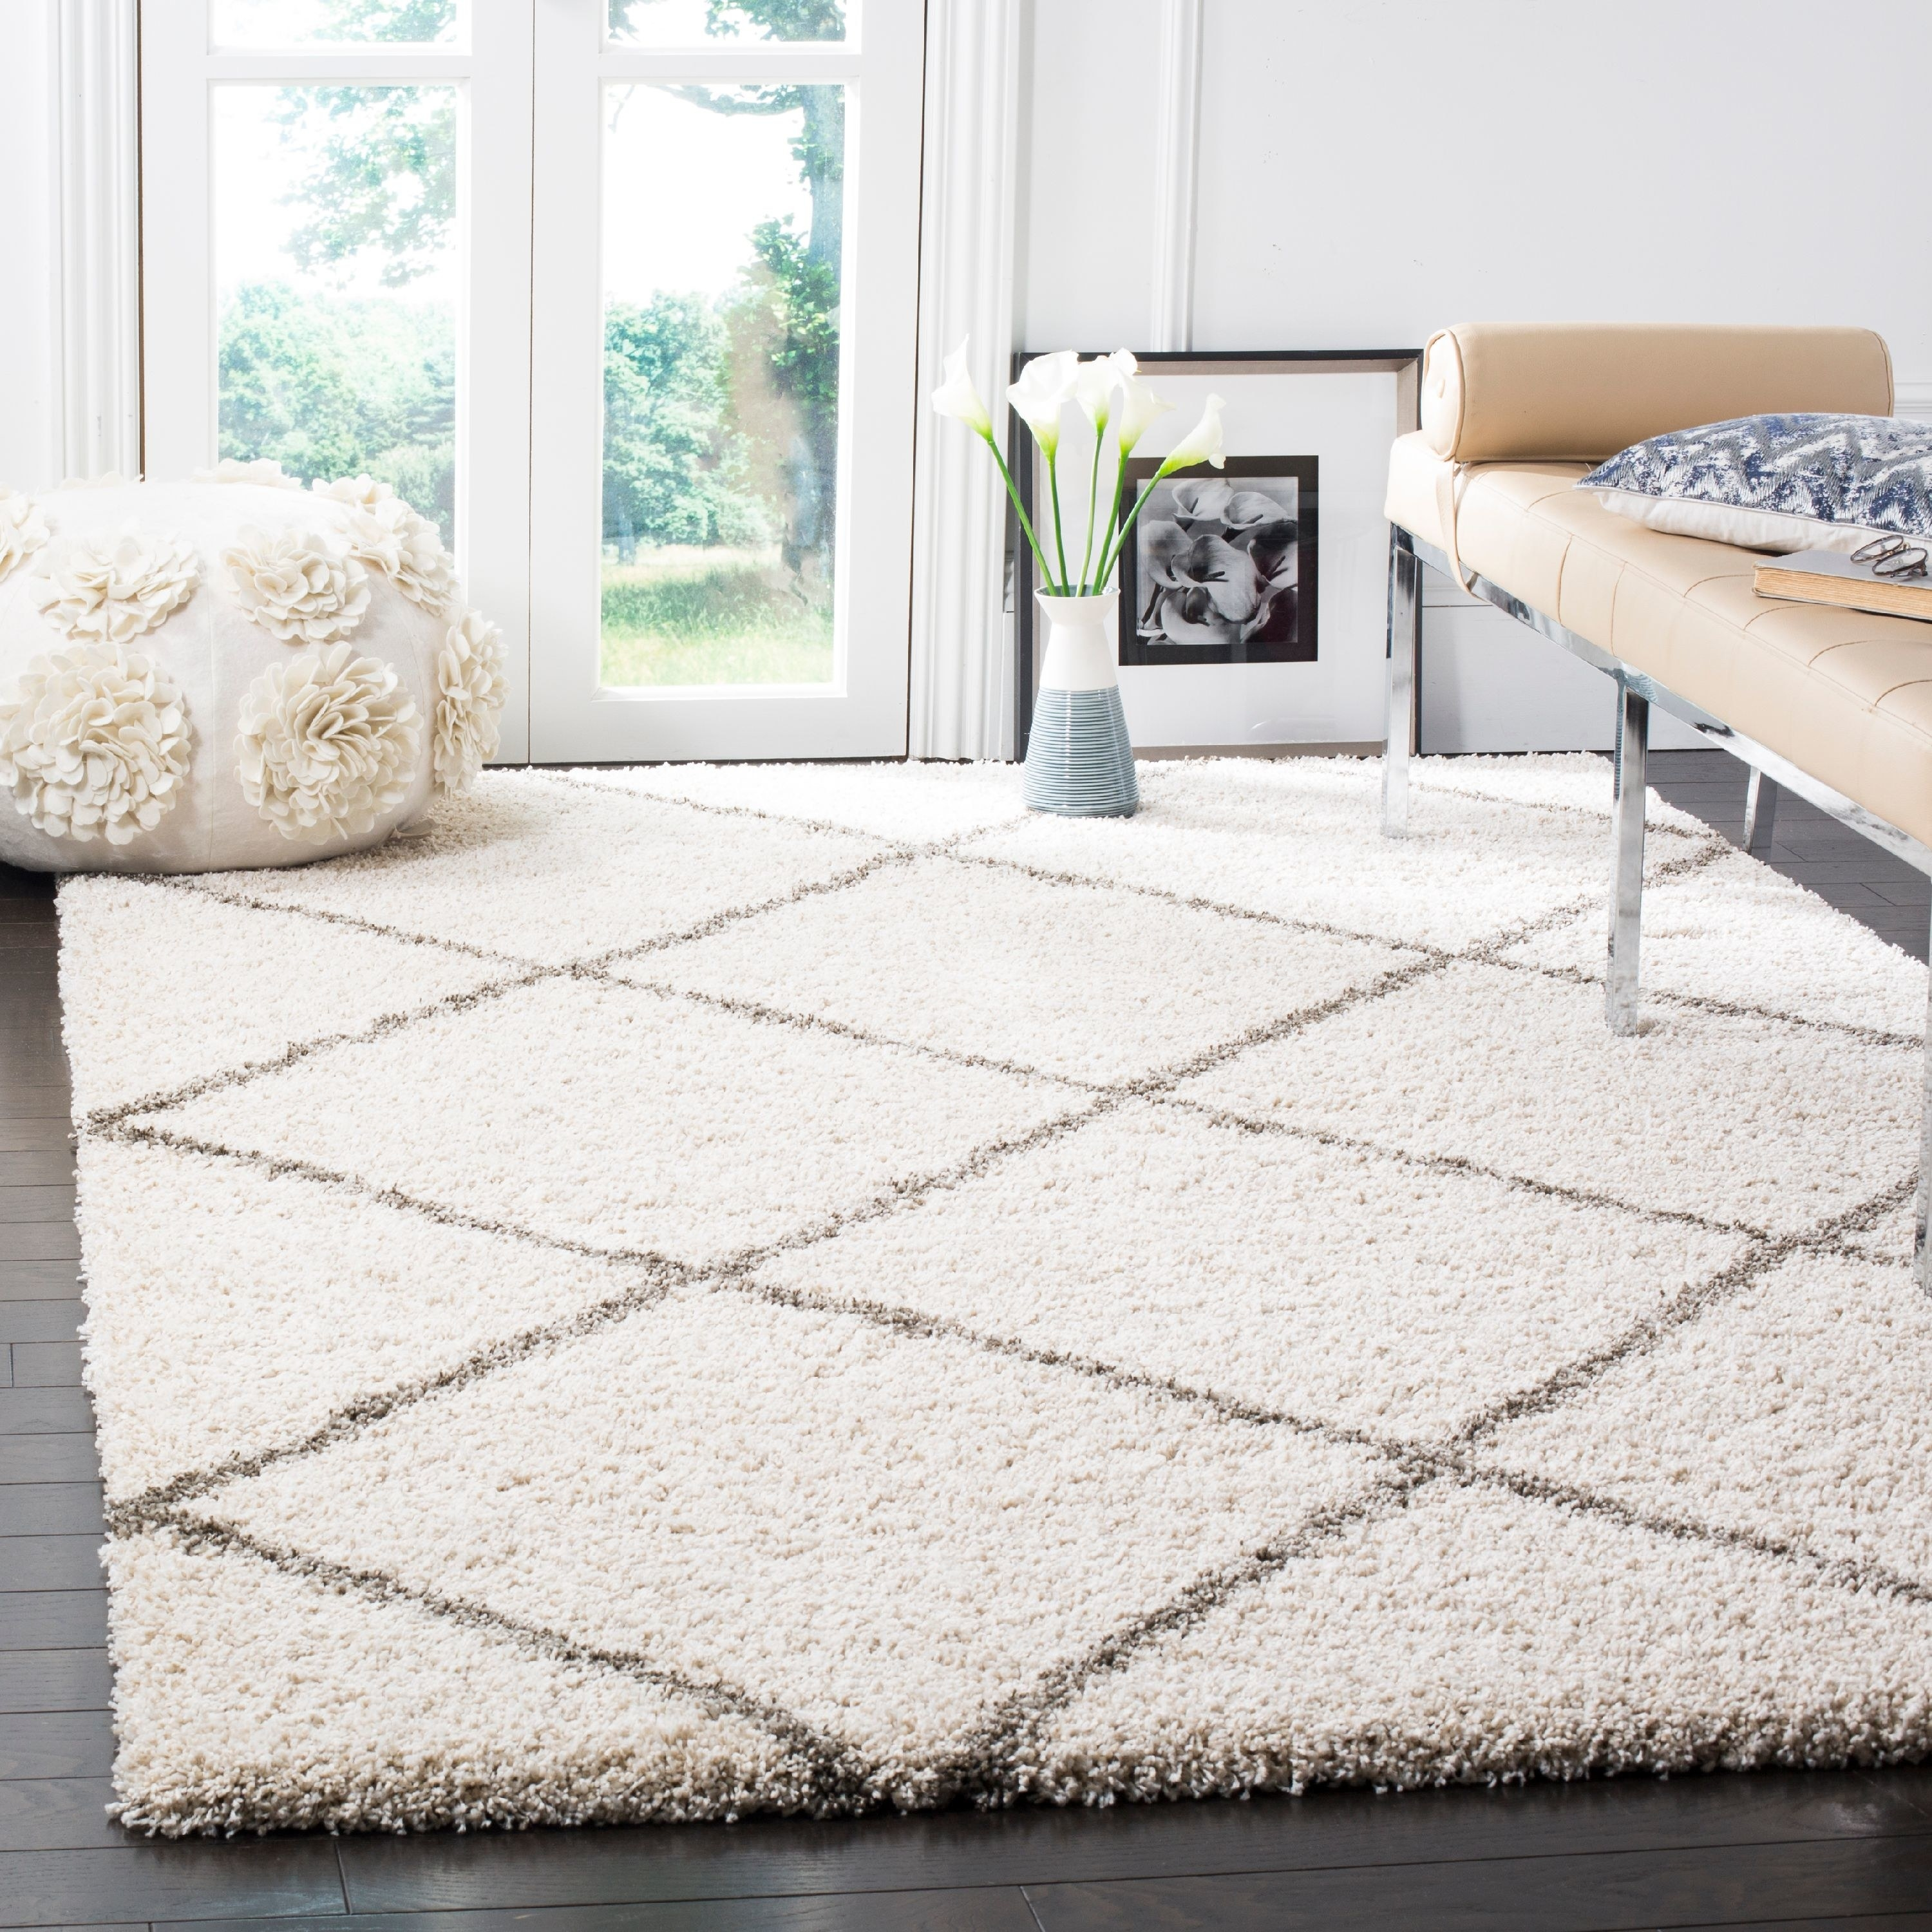 A white rug with gray crossed lines